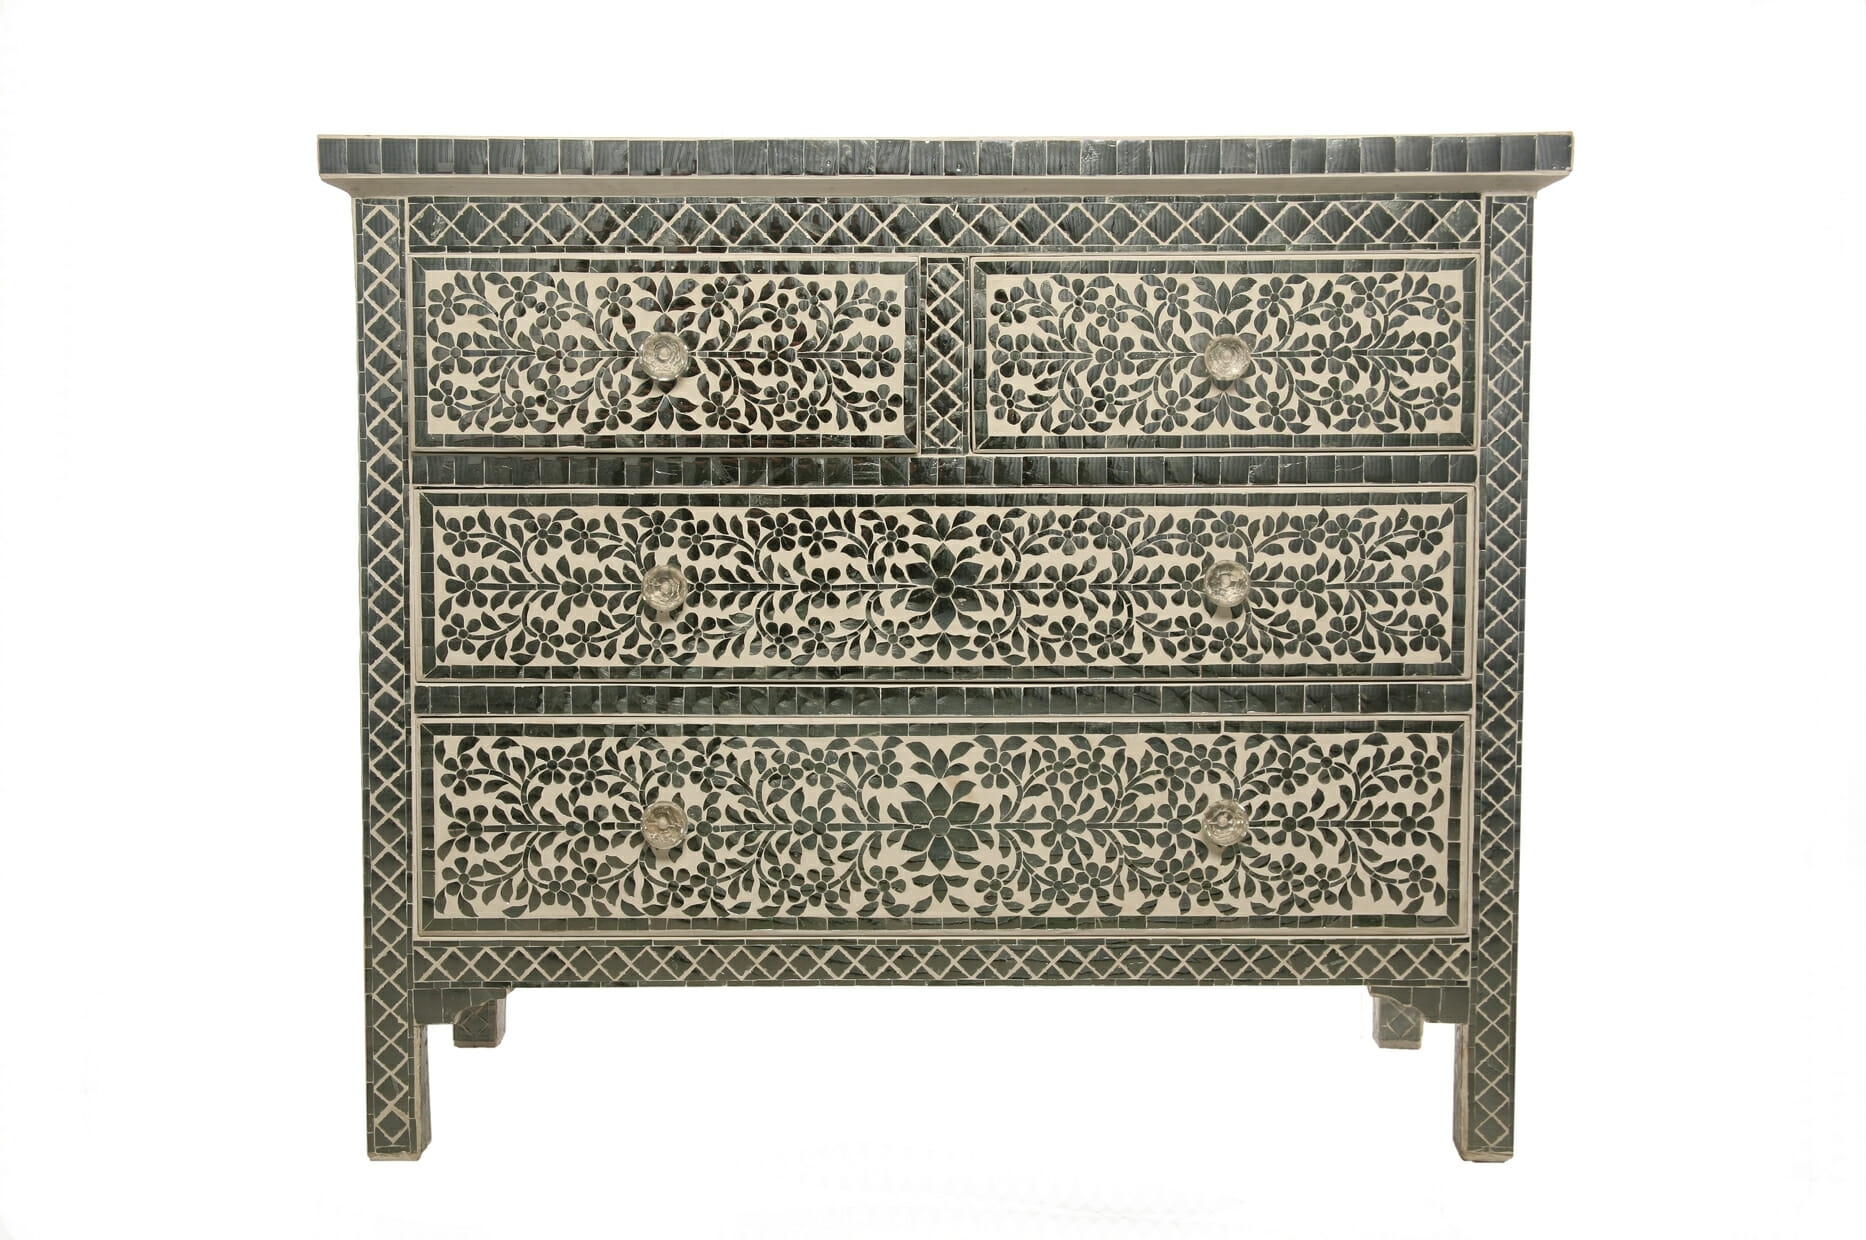 Indian Bone Inlay Furniture For Sale | Iris Furnishing Ltd with Geo Pattern Black And White Bone Inlay Sideboards (Image 21 of 30)